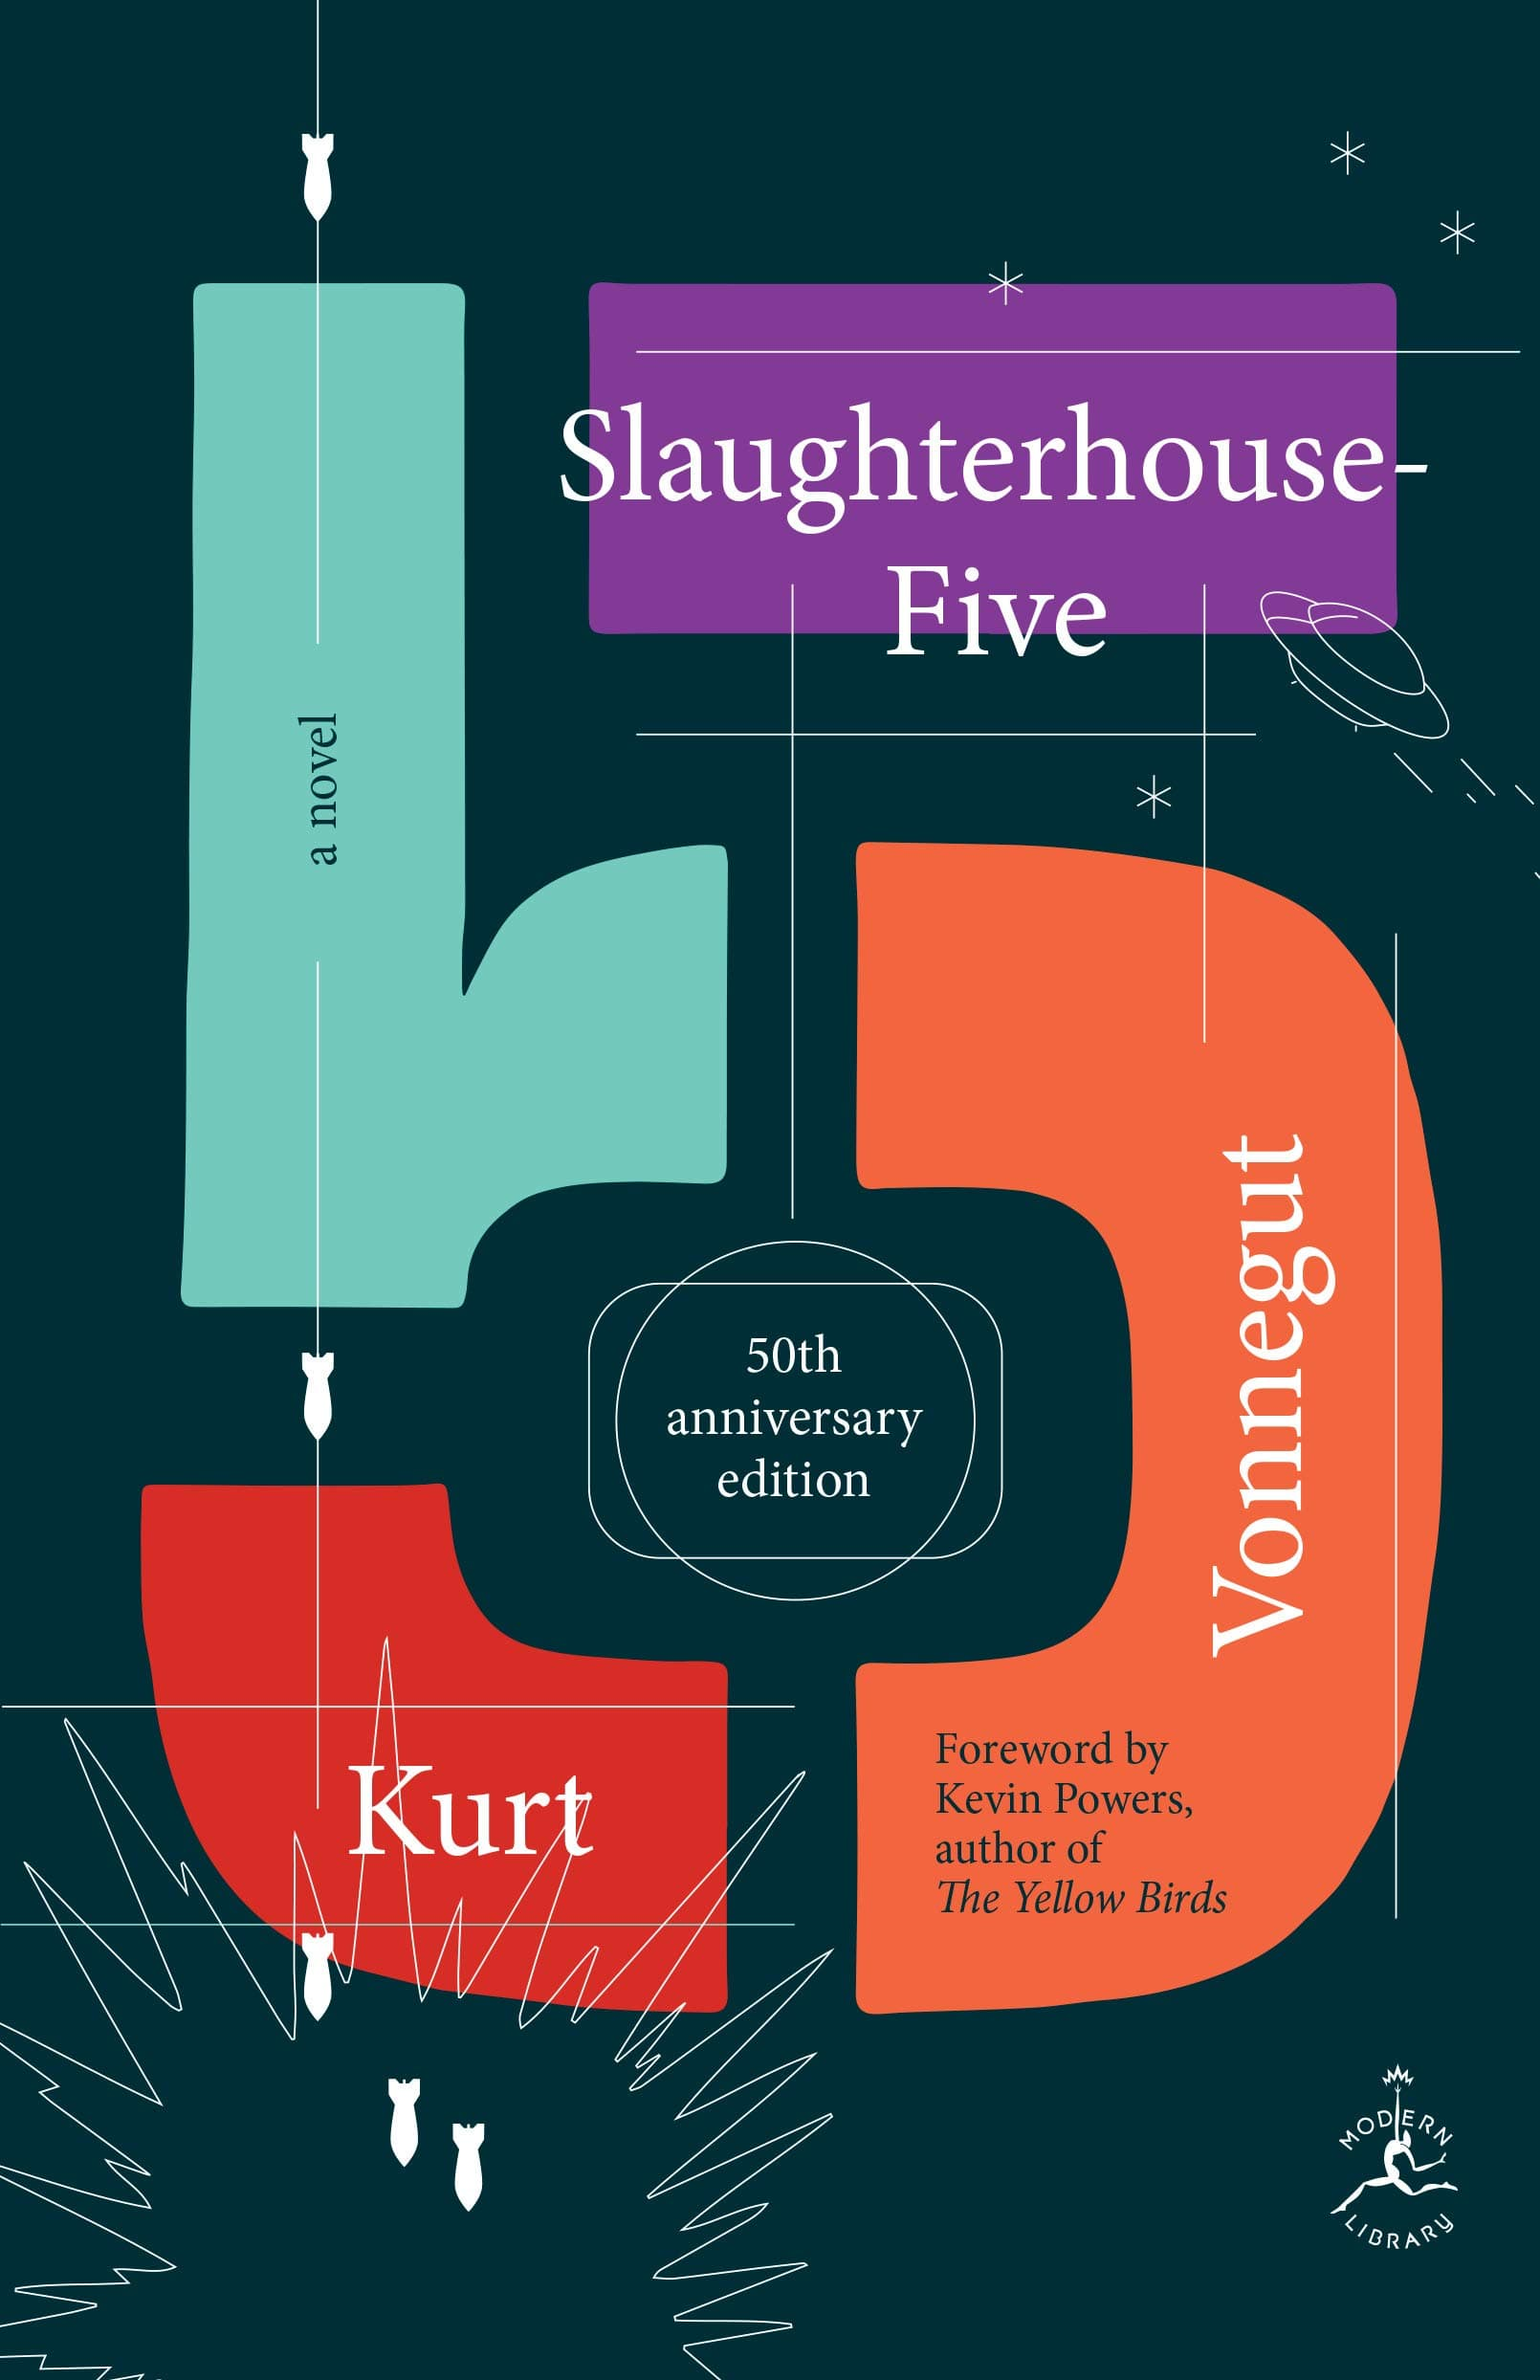 The cover of Slaughterhouse-Five